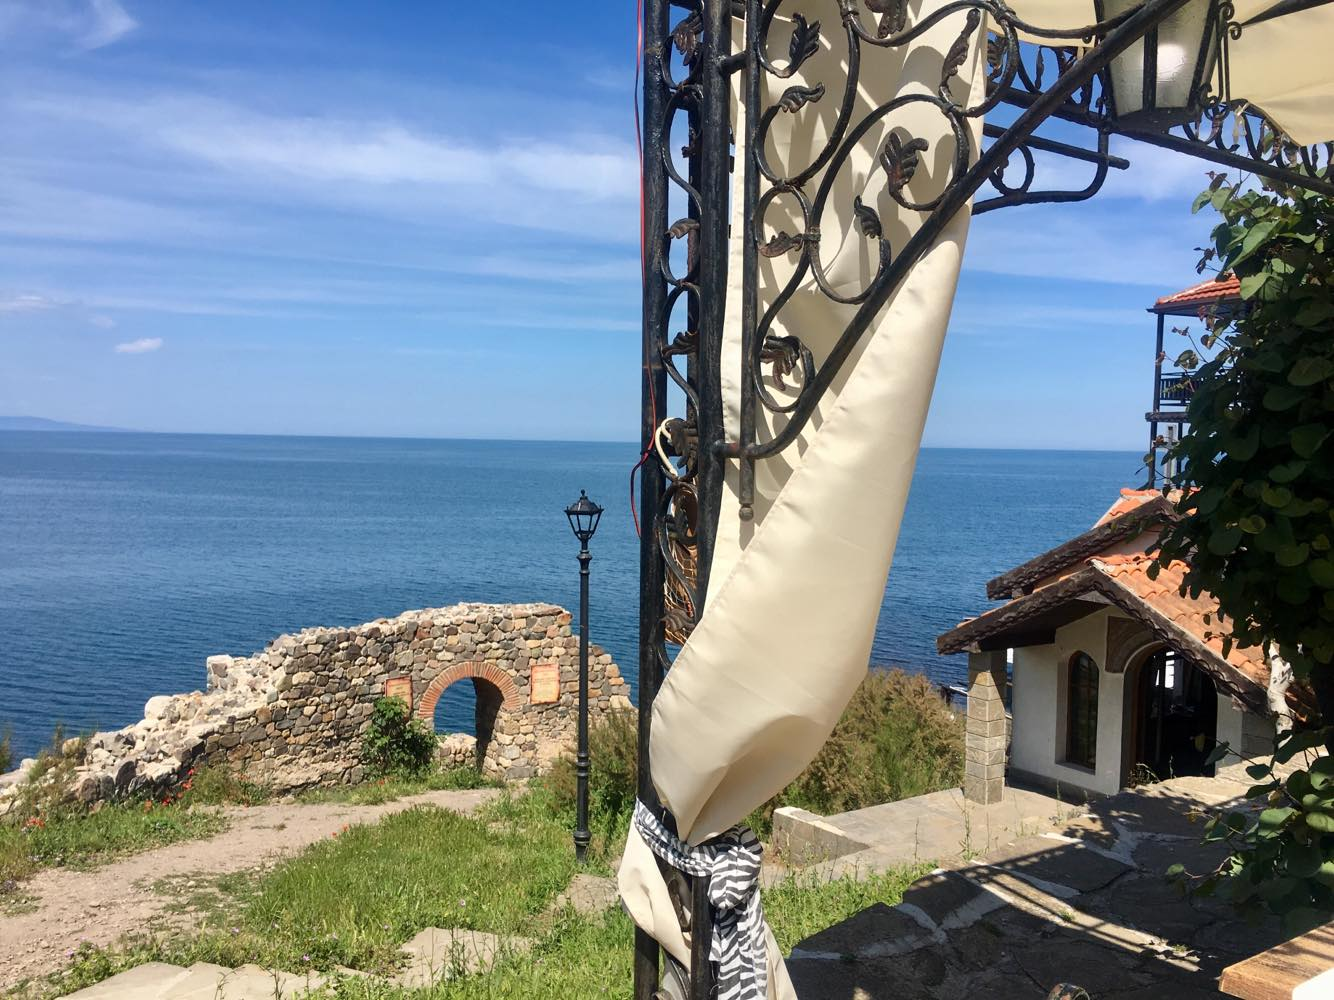 Discover this piece of paradise named Sozopol